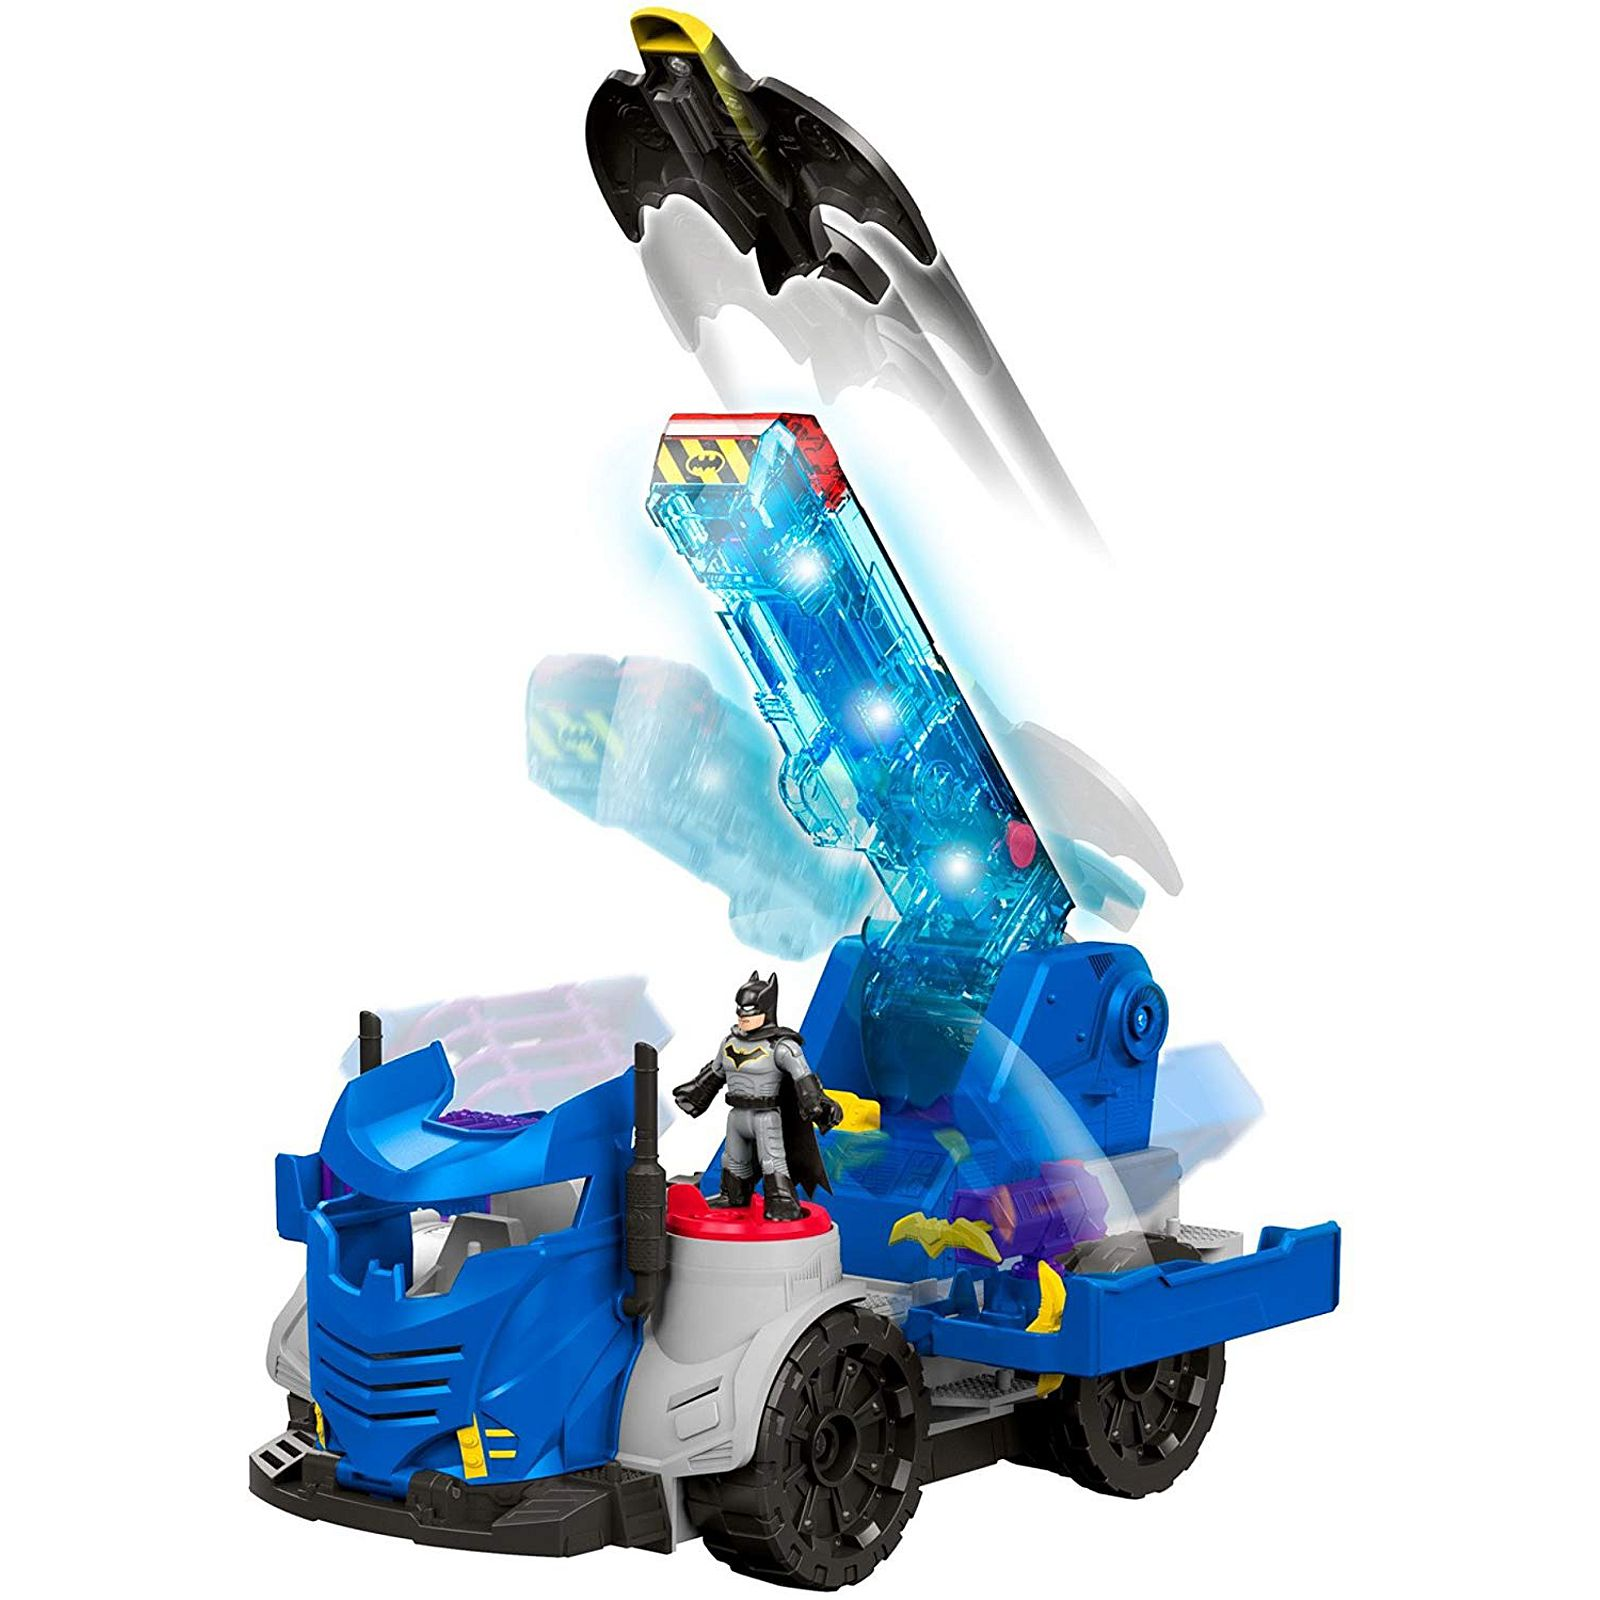 Replacement Projctiles Mattel Fisher-Price Imaginext DC Super Friends 2 in 1 Childrens Batwing